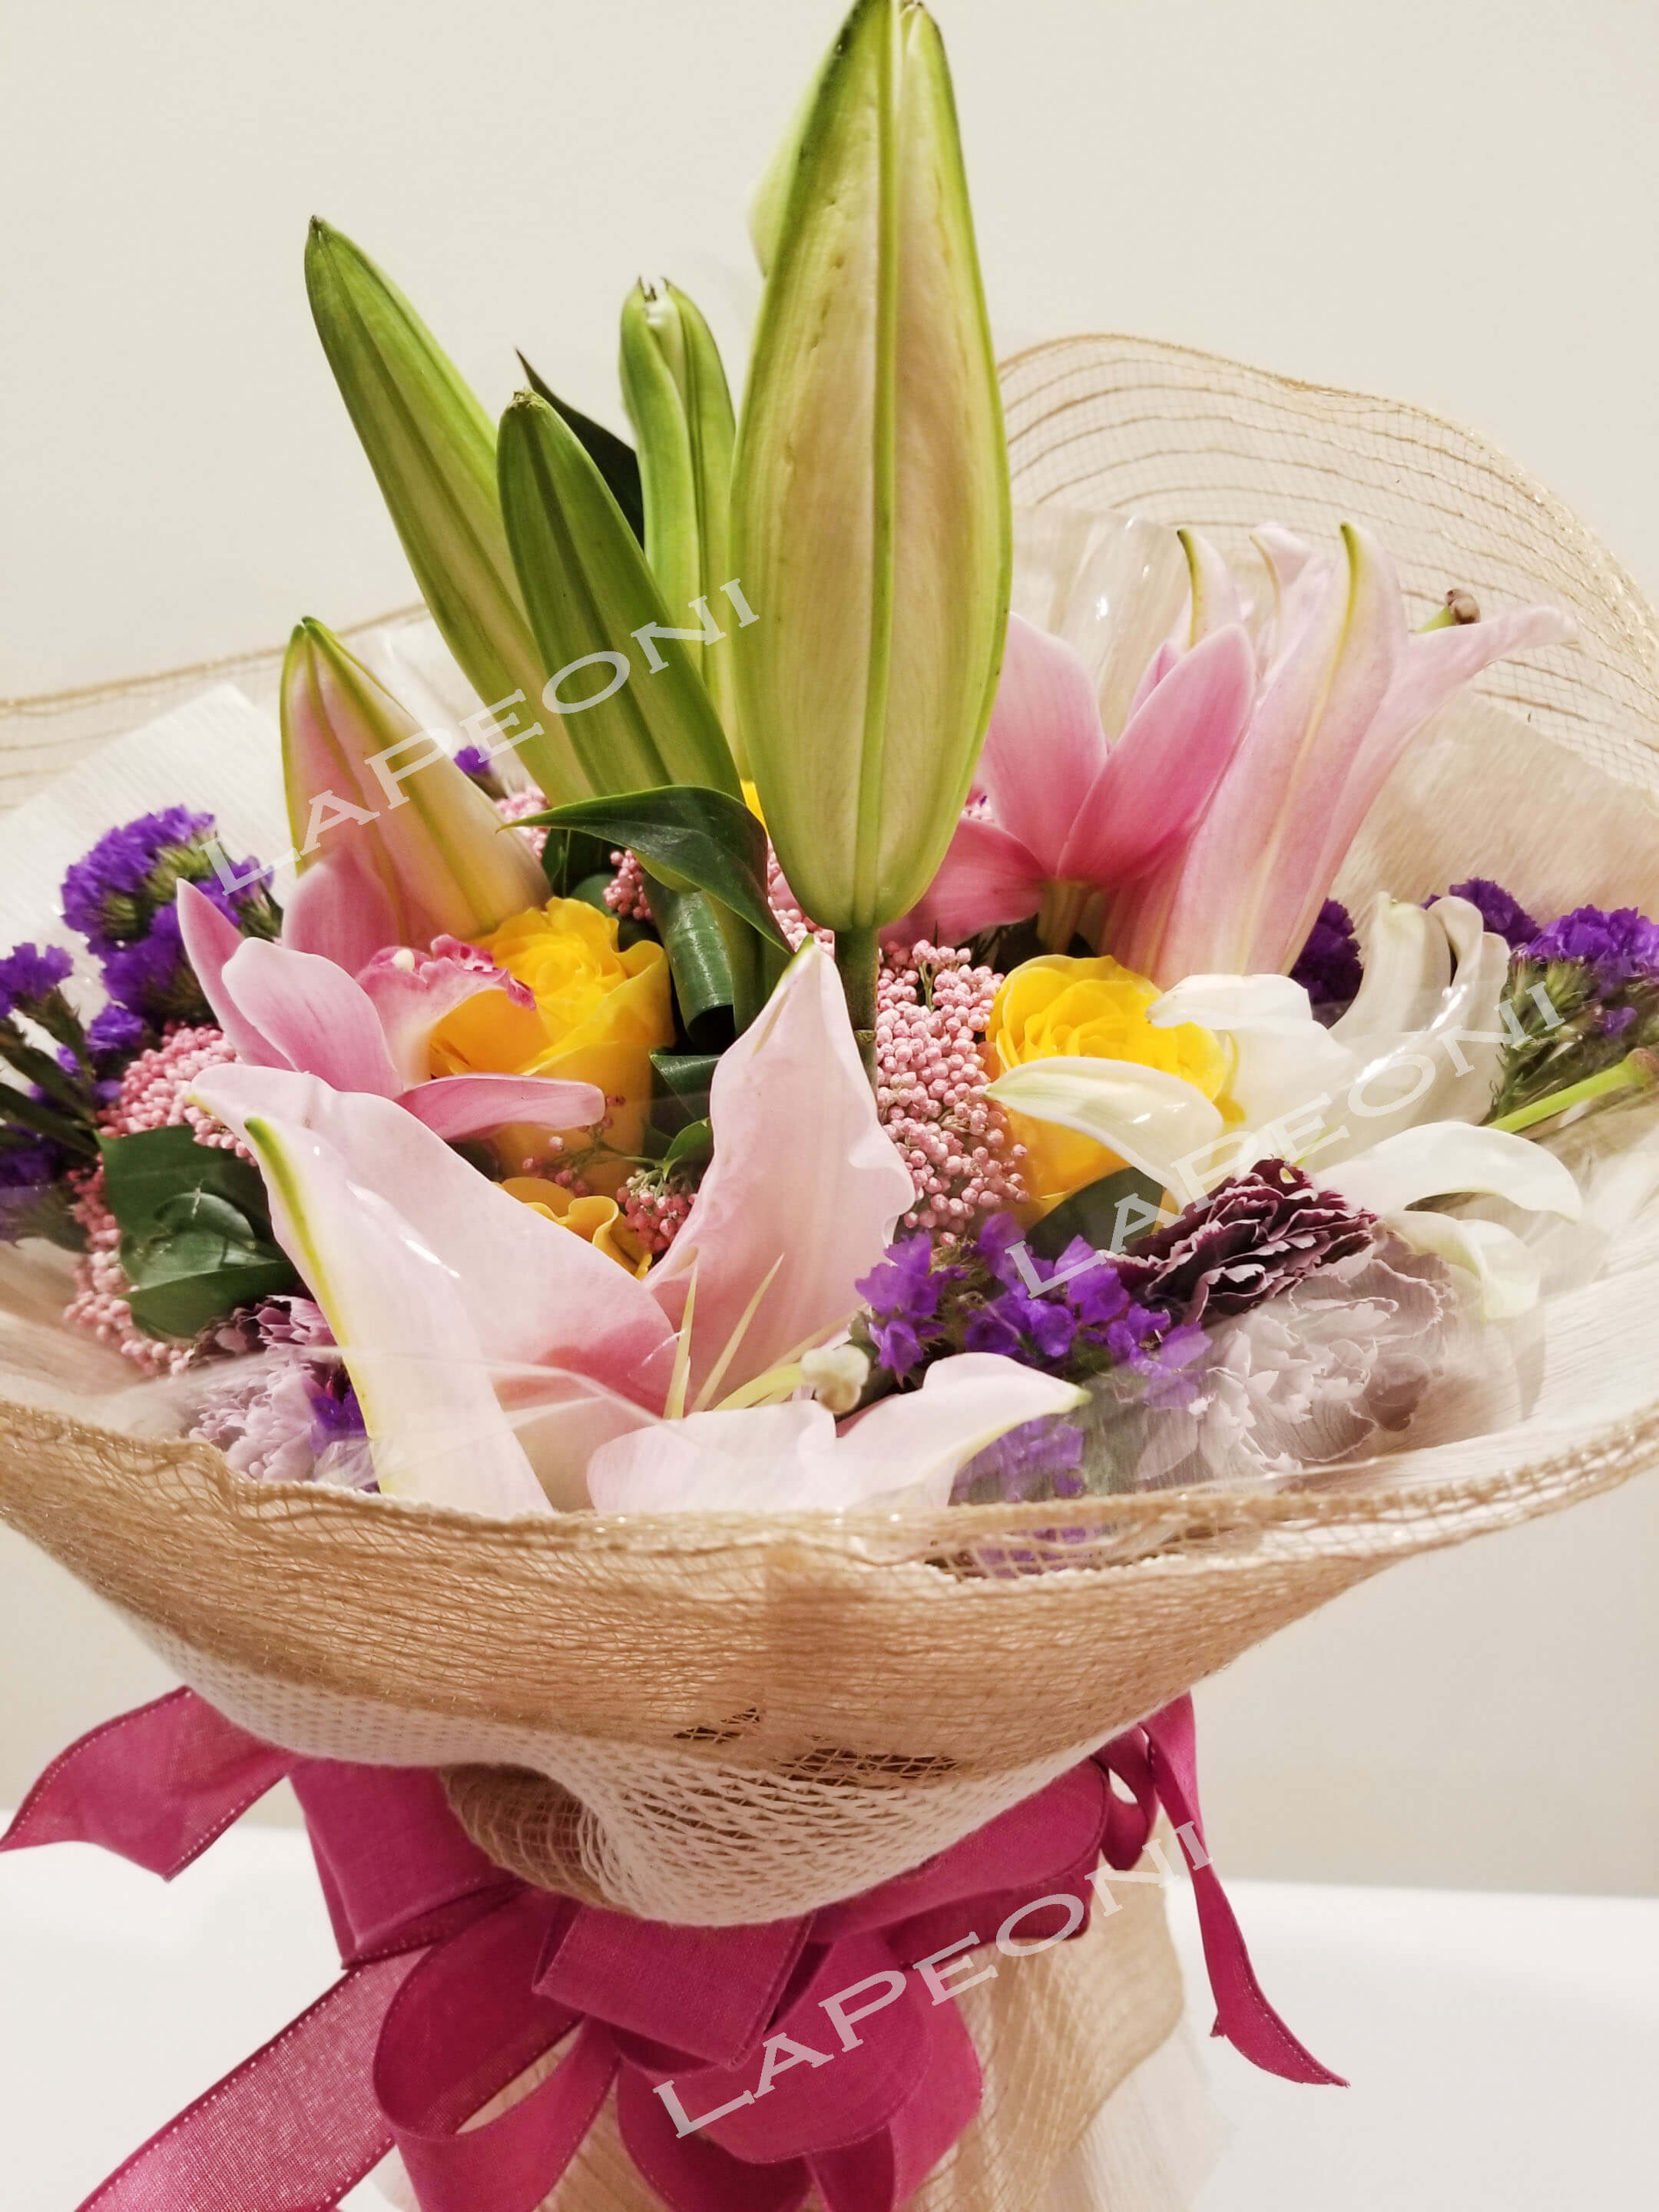 Sweetheart- Send Flowers - Lapeoni Flowers and Events